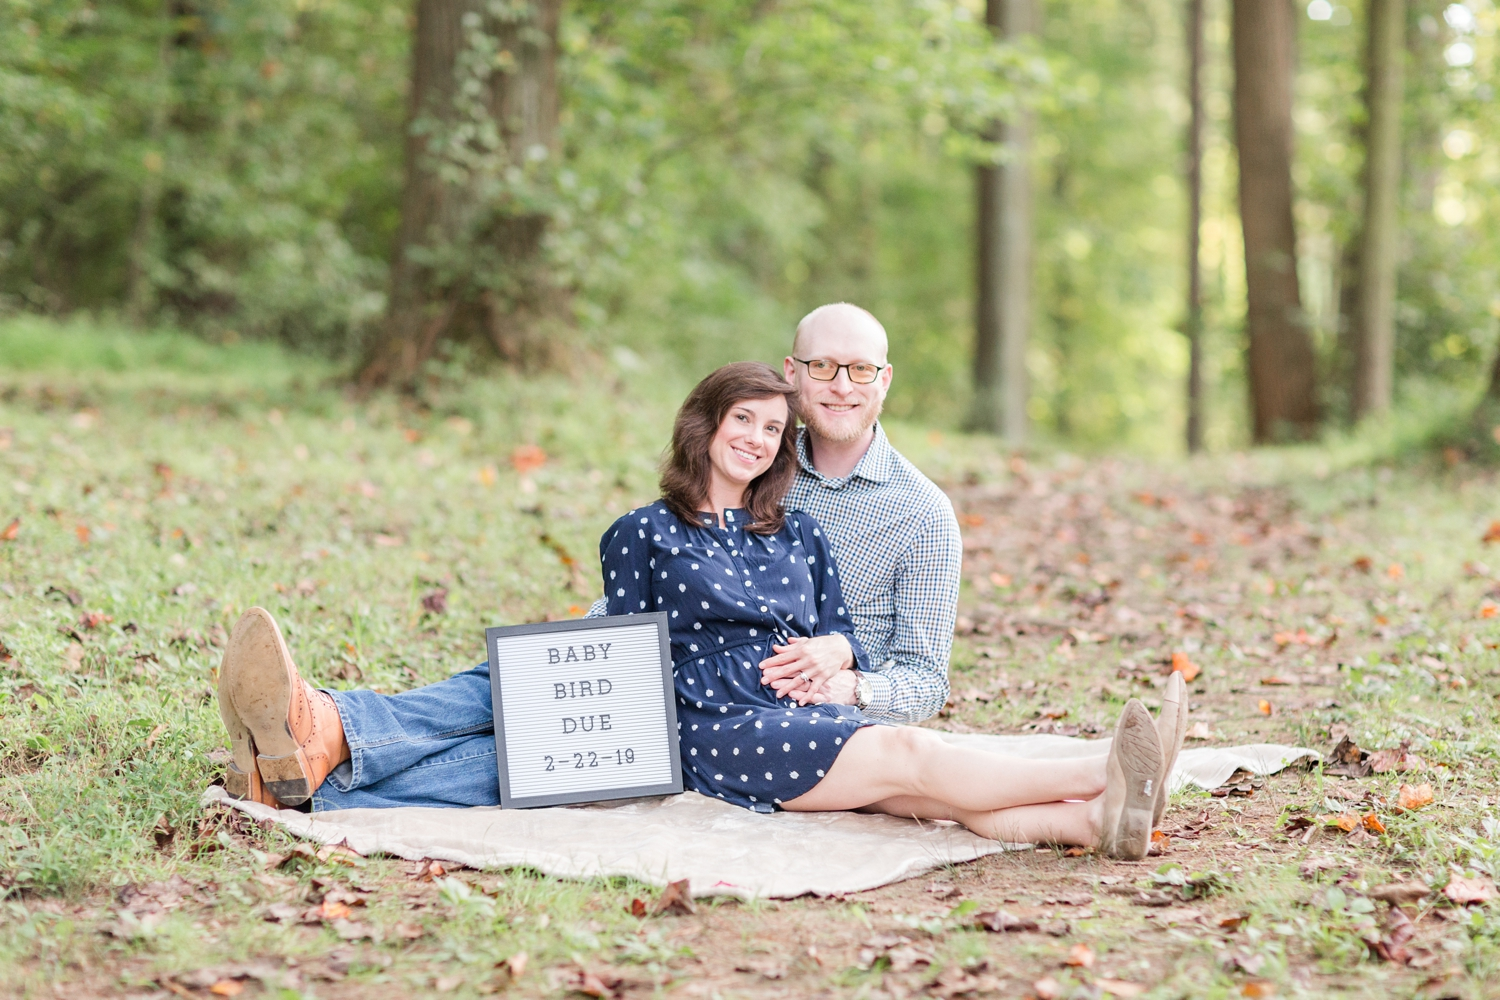 Bird Family 2018-30_Loch-Raven-Reservoir-Anniversary-Pregnancy-Reveal-Photographer-anna-grace-photography-photo.jpg